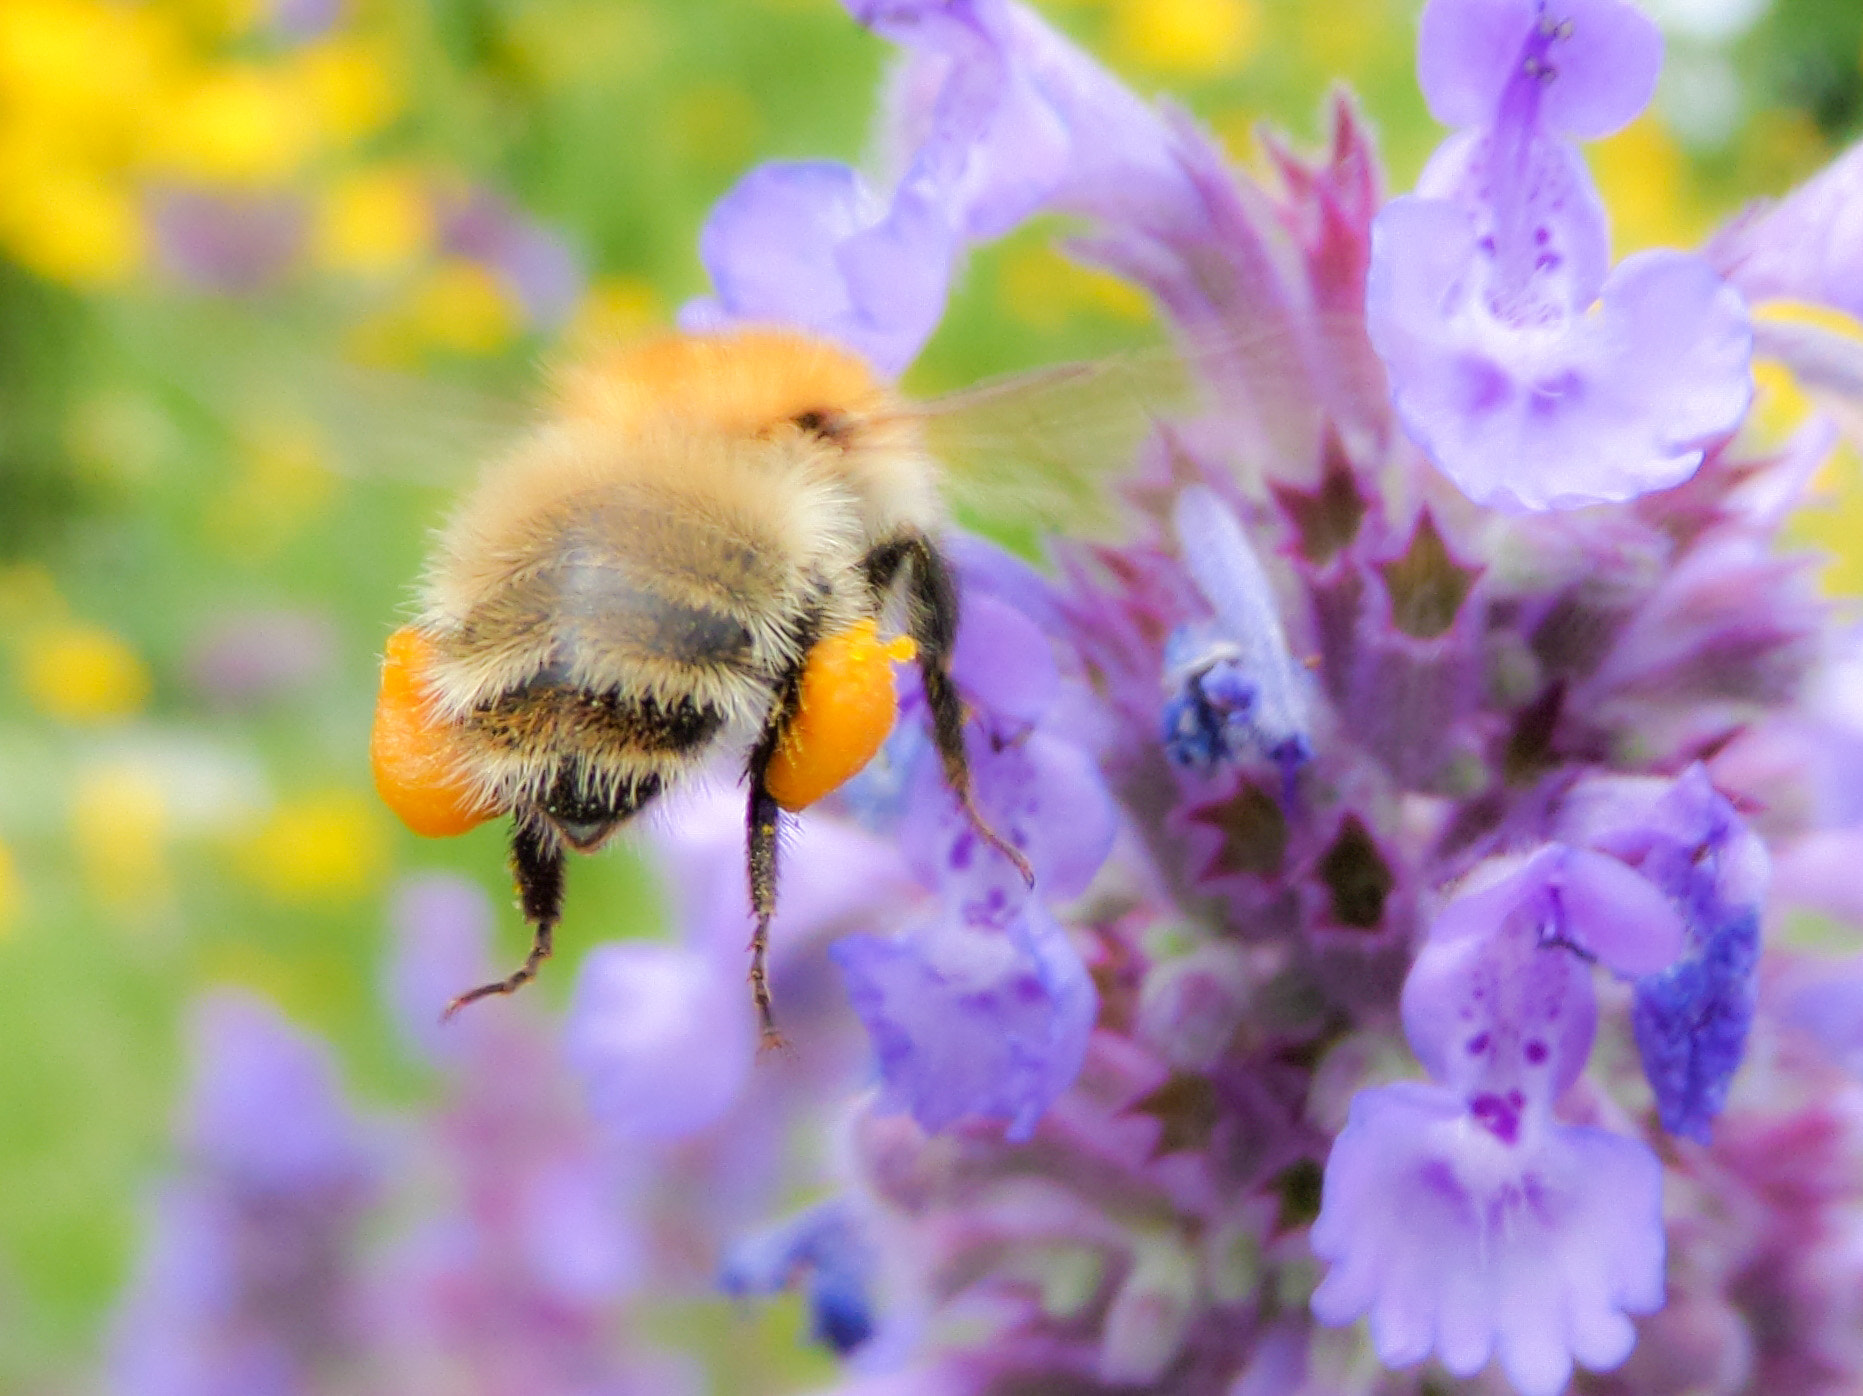 Photograph Bee work by Florian Bonhoure on 500px